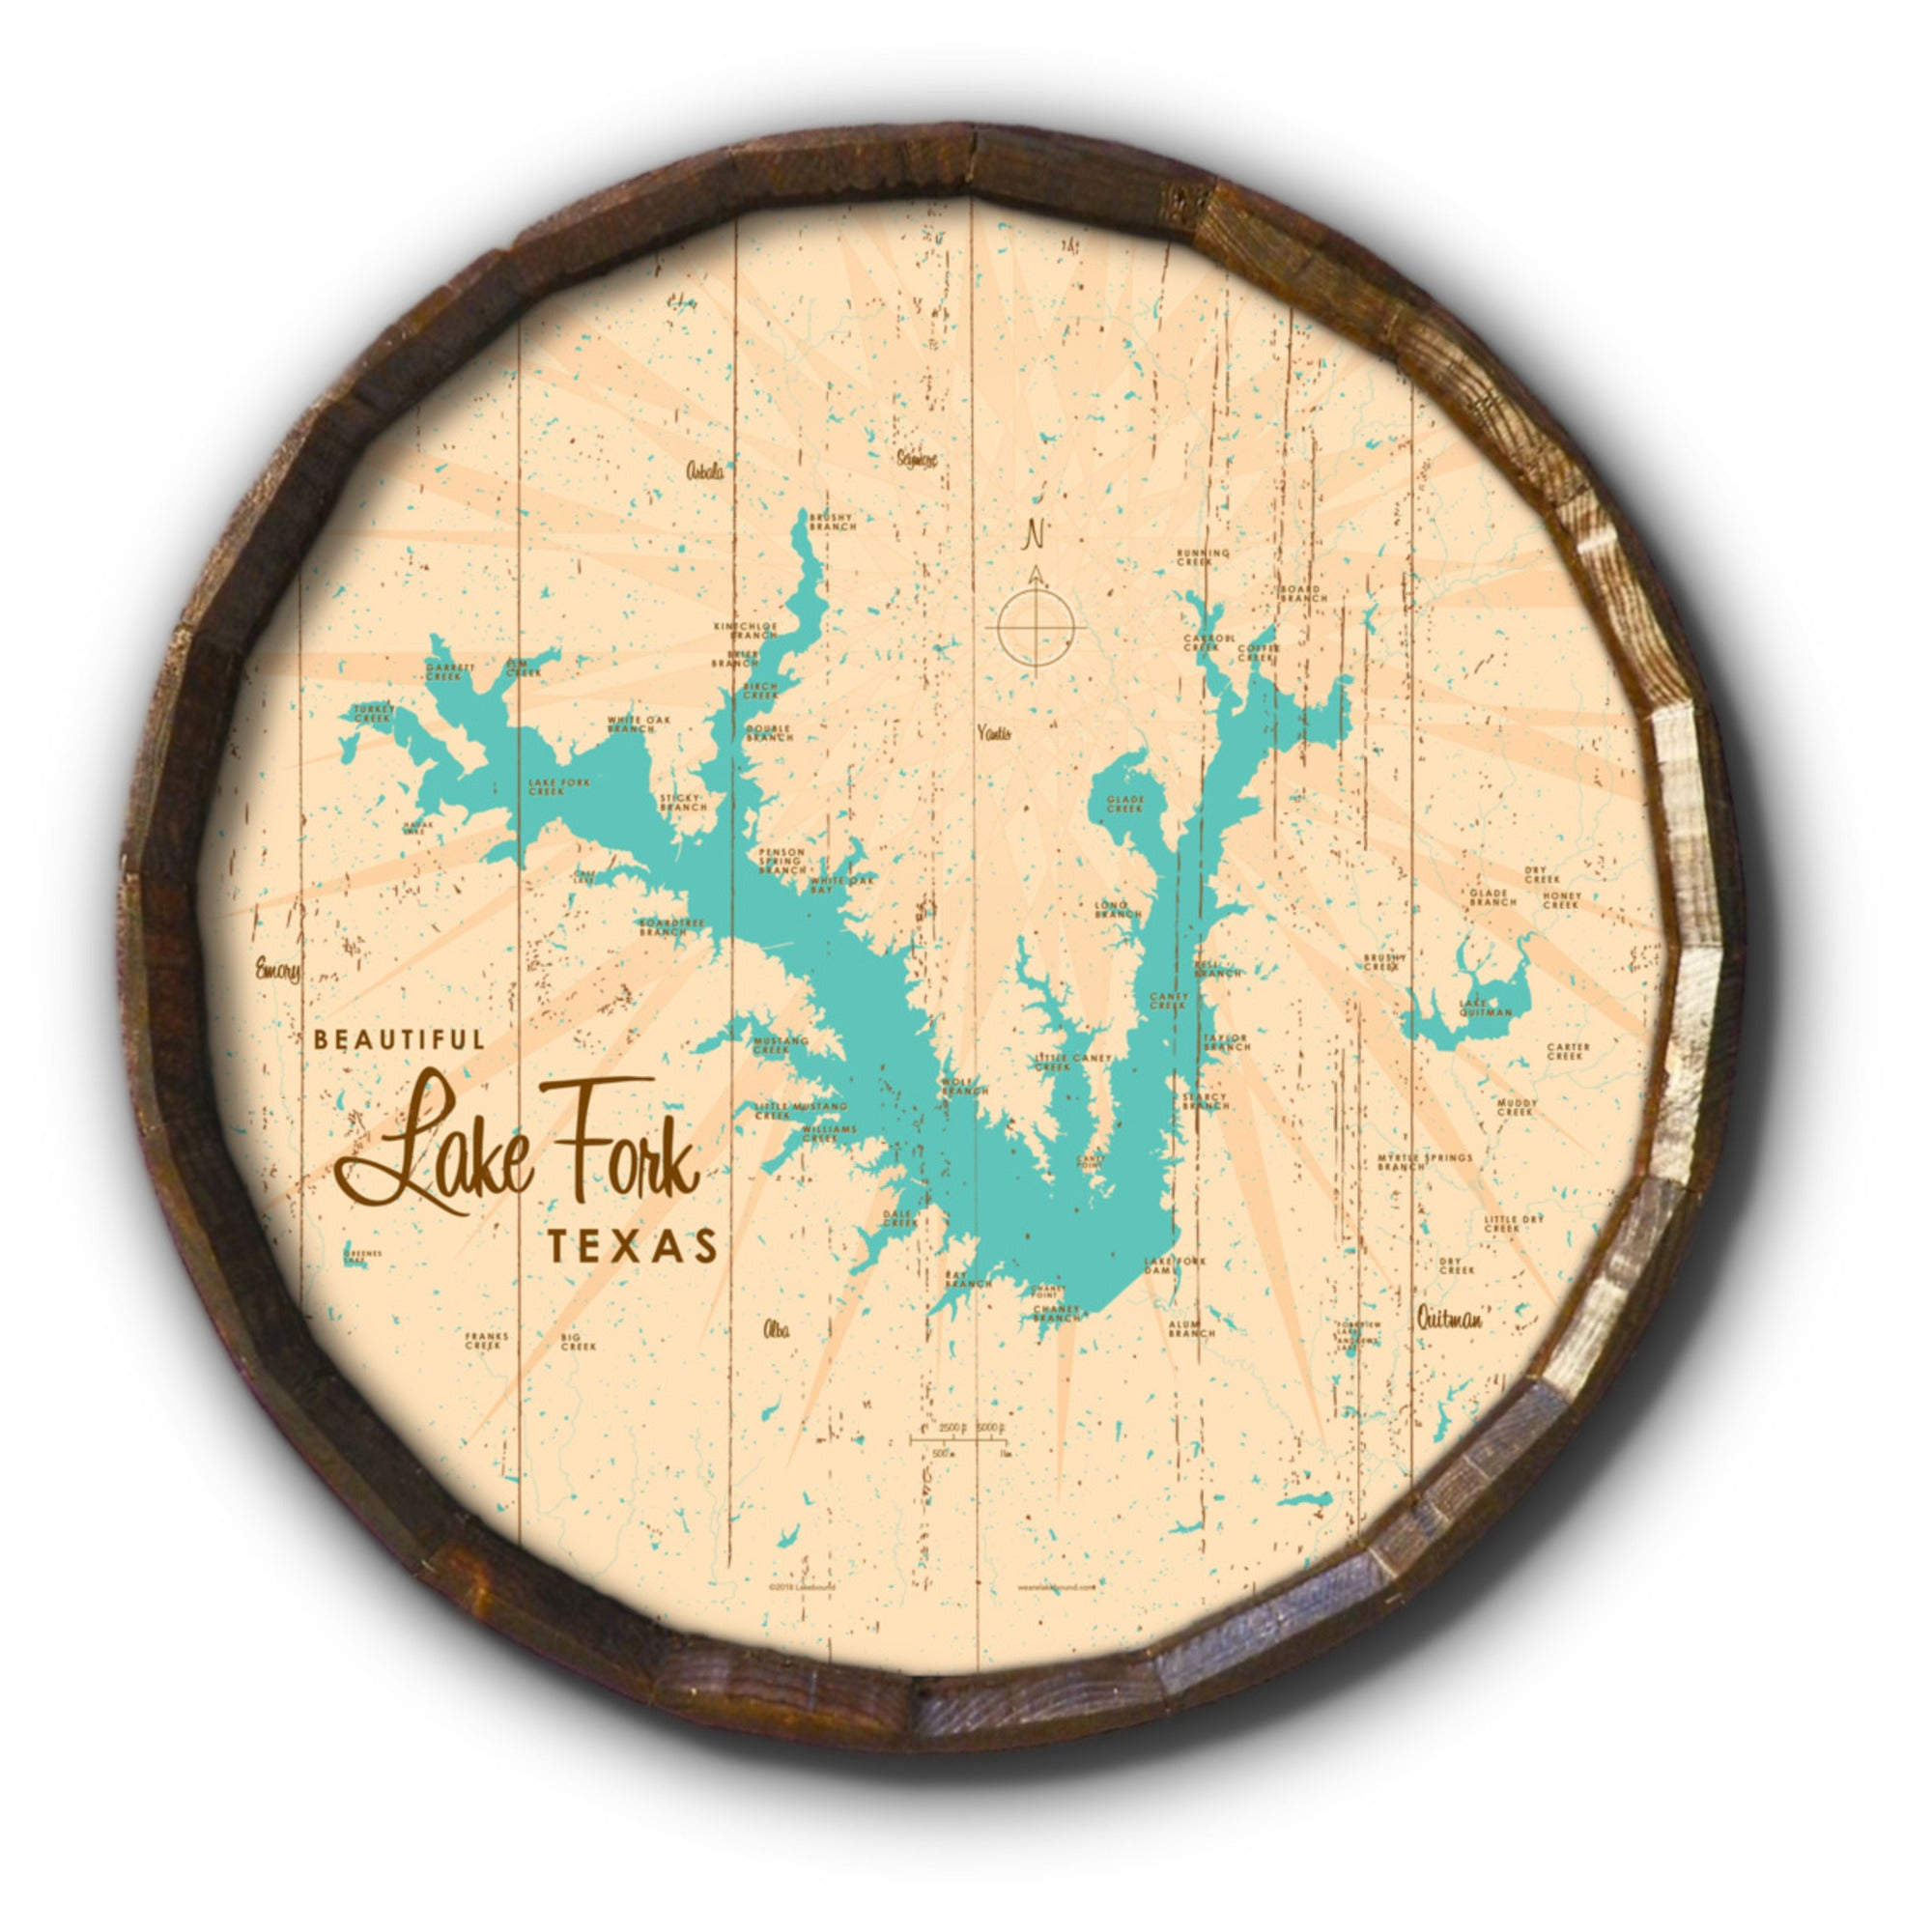 Lake Fork Texas, Rustic Barrel End Map Art